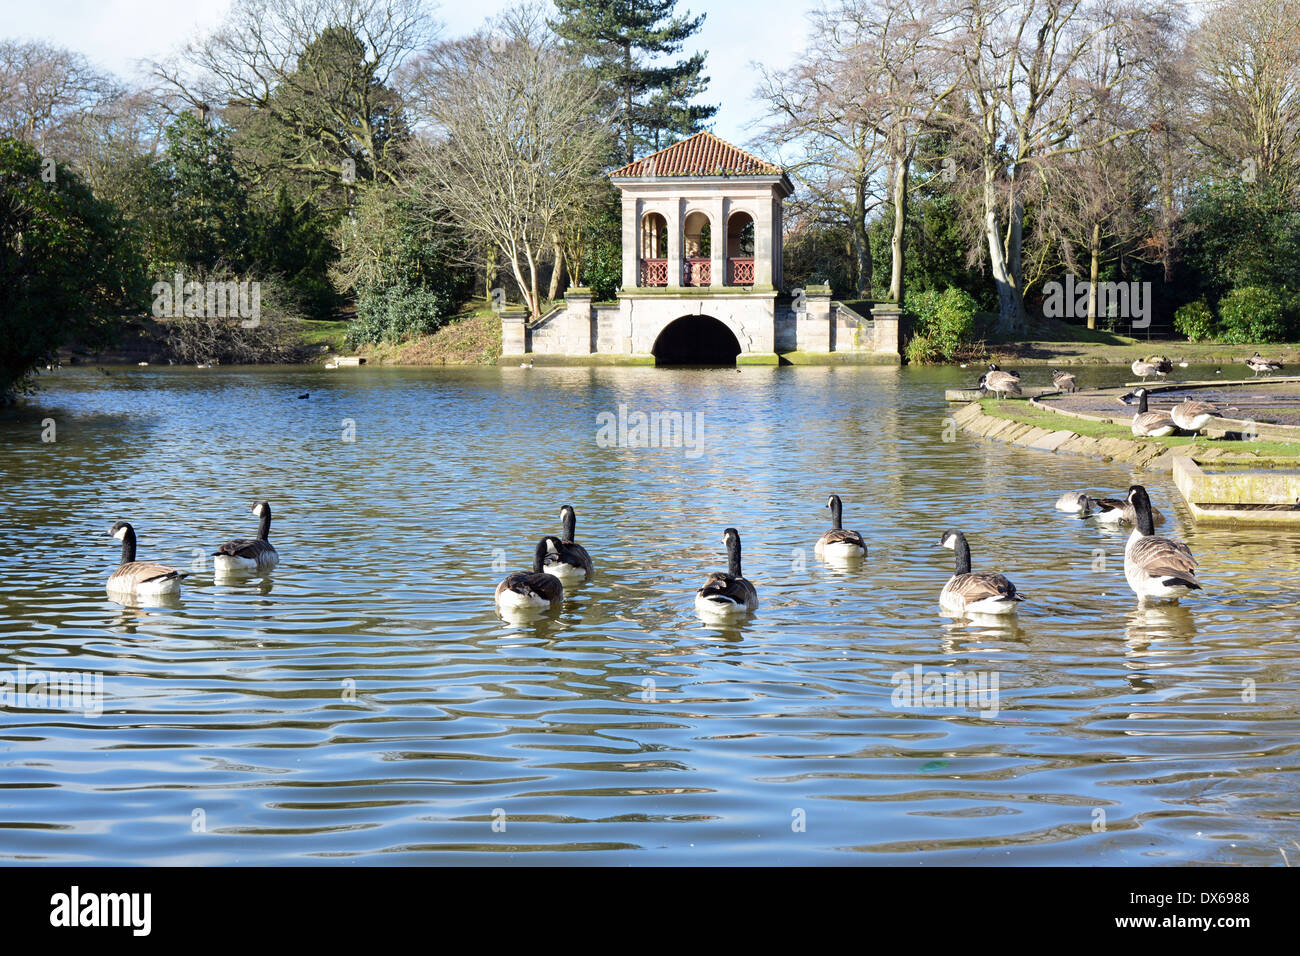 Geese swimming towards the famous boathouse in Birkenhead Park, Wirral, UK - Stock Image